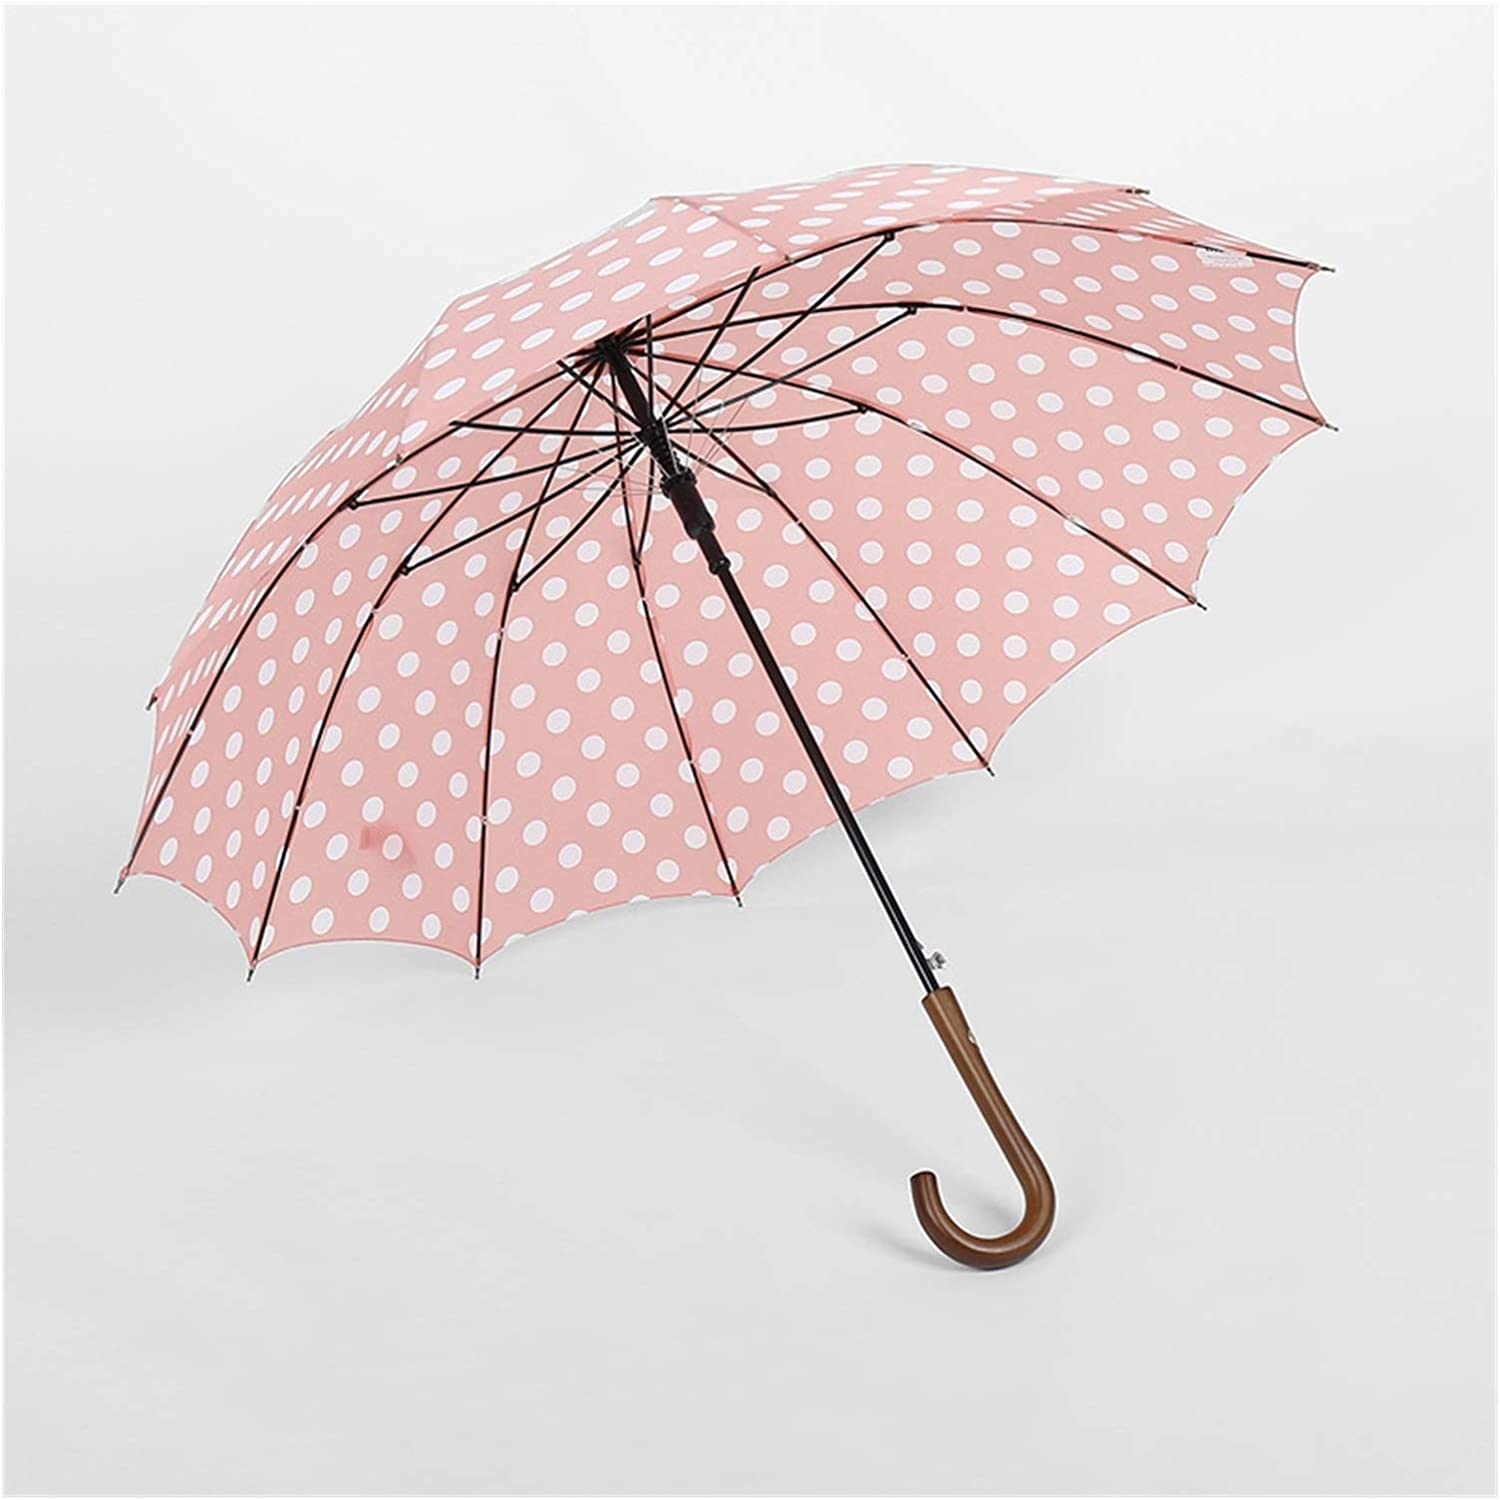 2021 spring and summer new YXIUER Rain Lowest price challenge Sun Women 16-Bone Curved Creative Handle Parasol